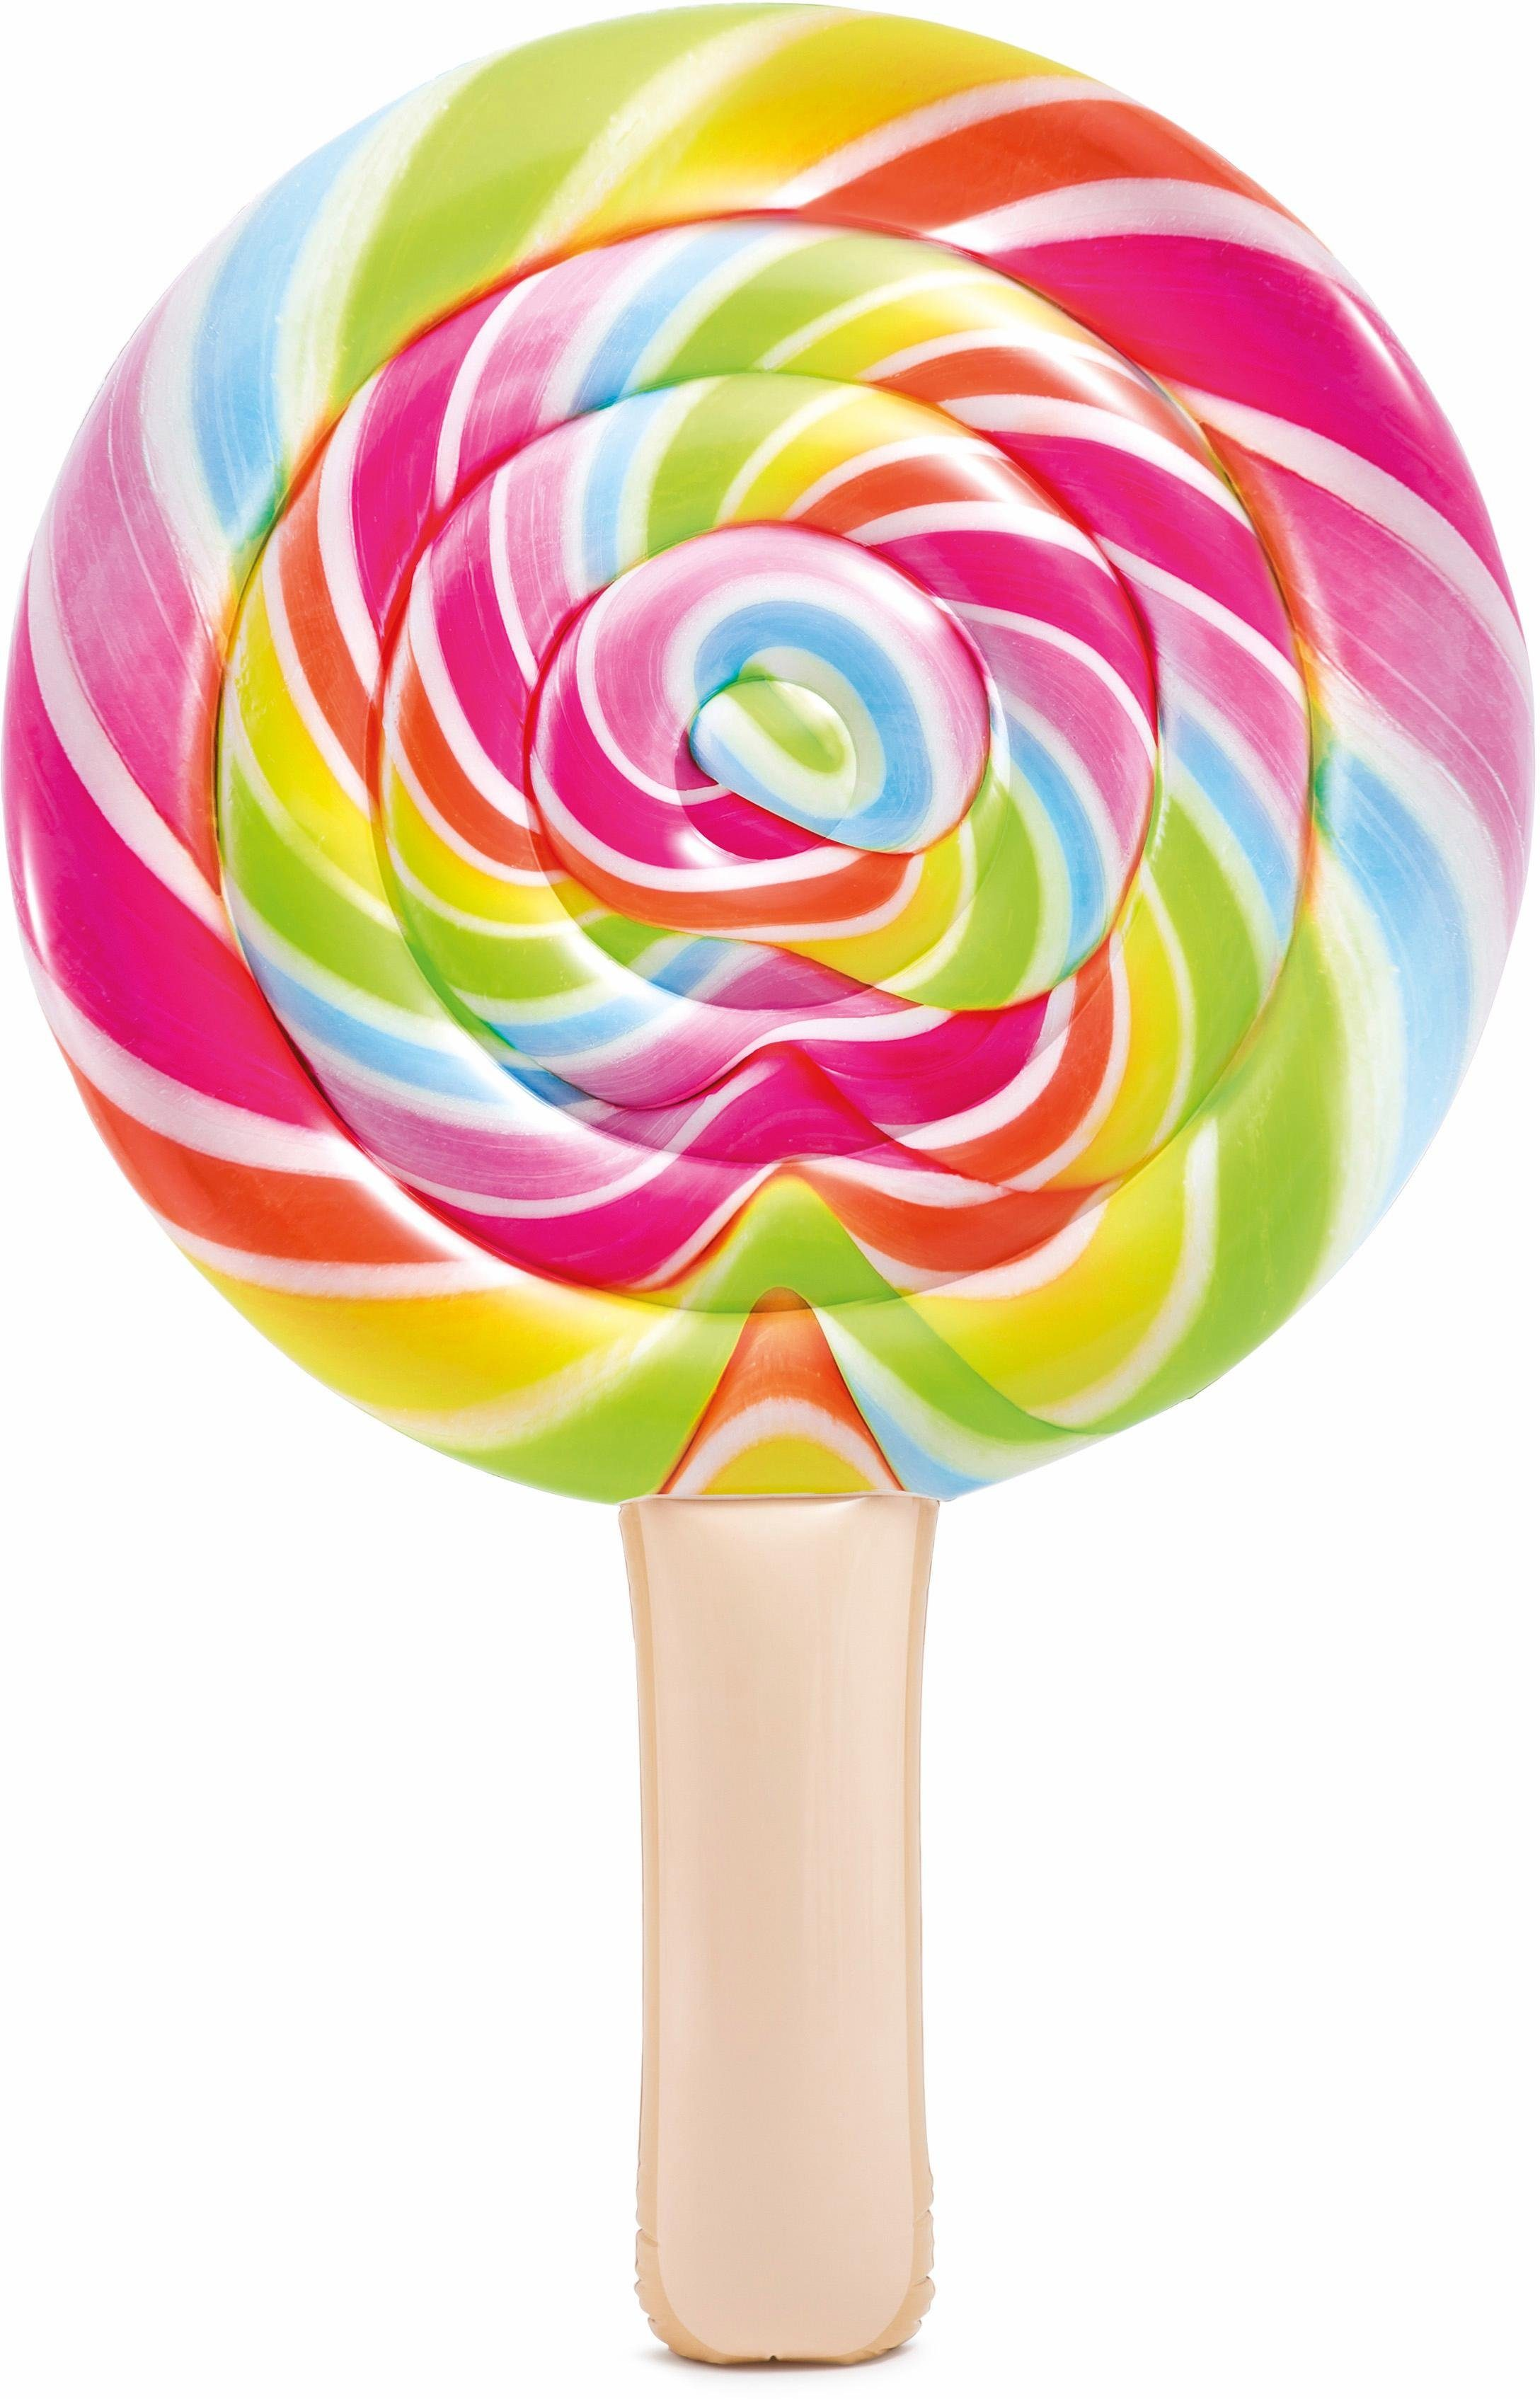 Intex Luftmatratze, »Lollipop«